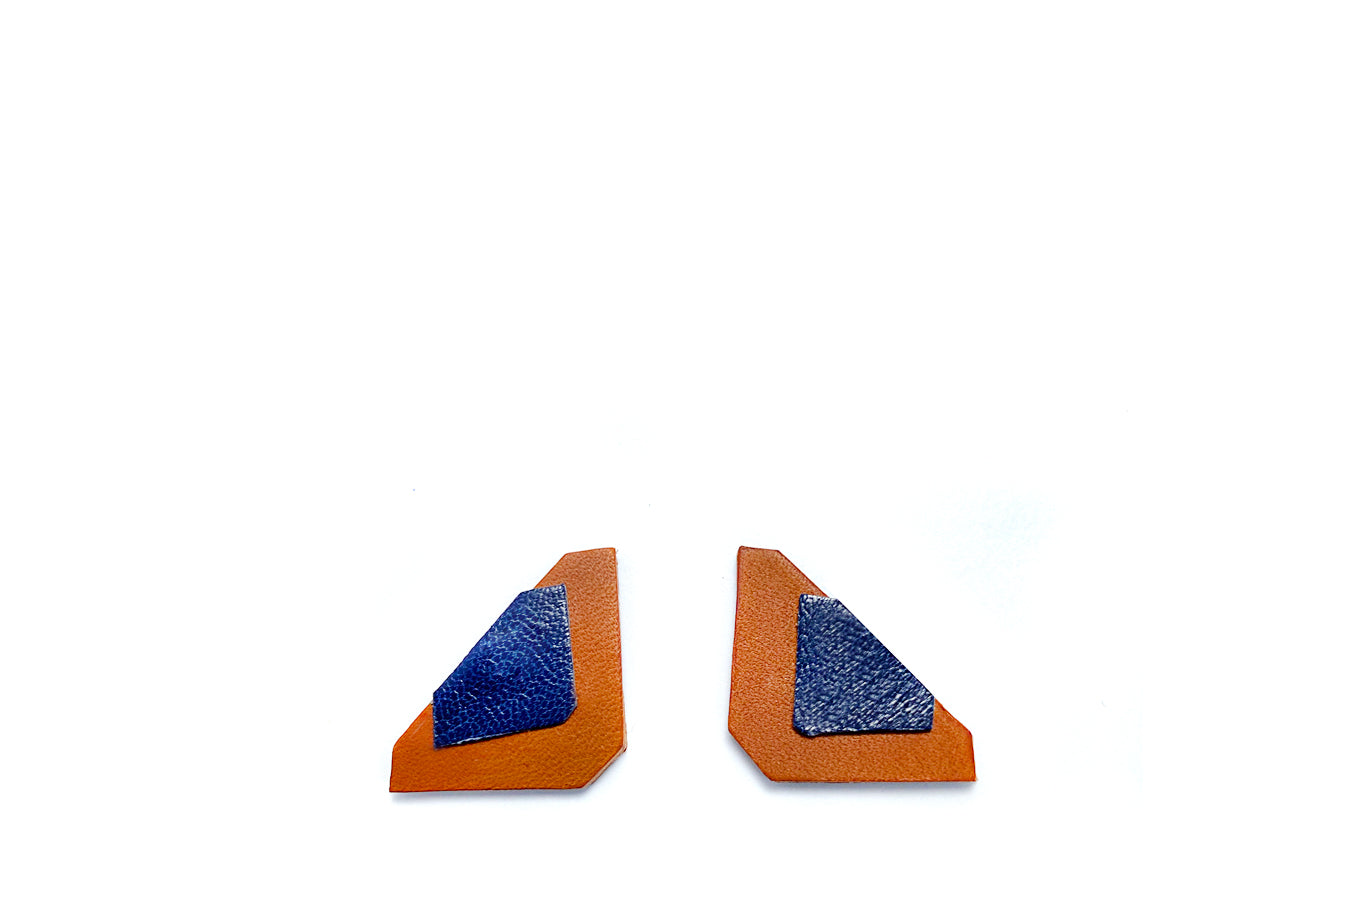 Blue & Brown Asci Earrings